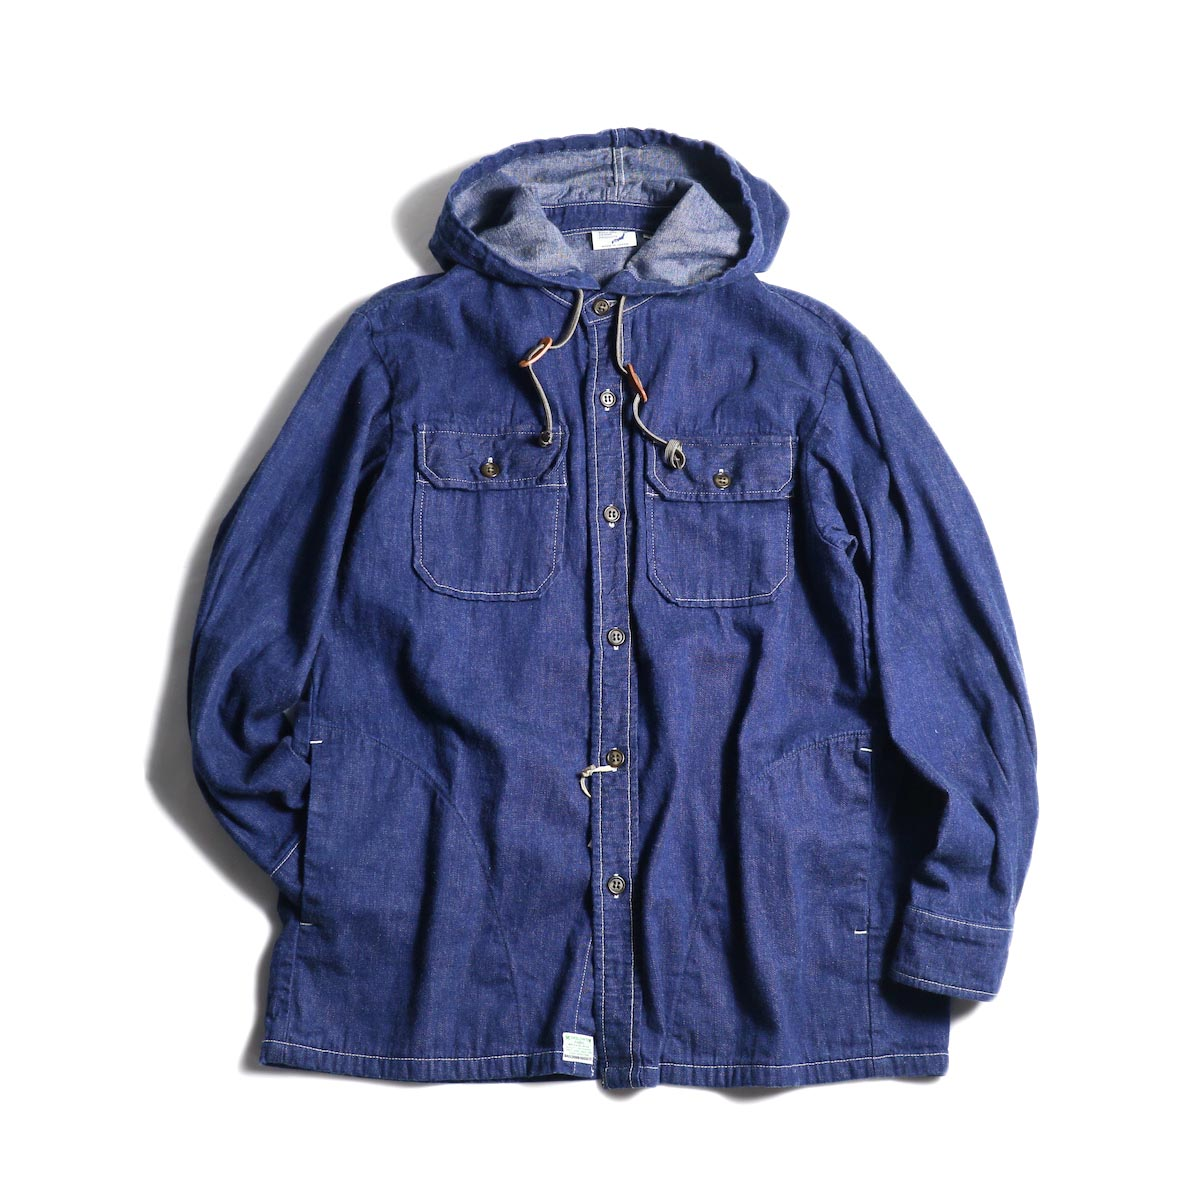 orSlow / HOODED SHIRT JACKET (One Wash)